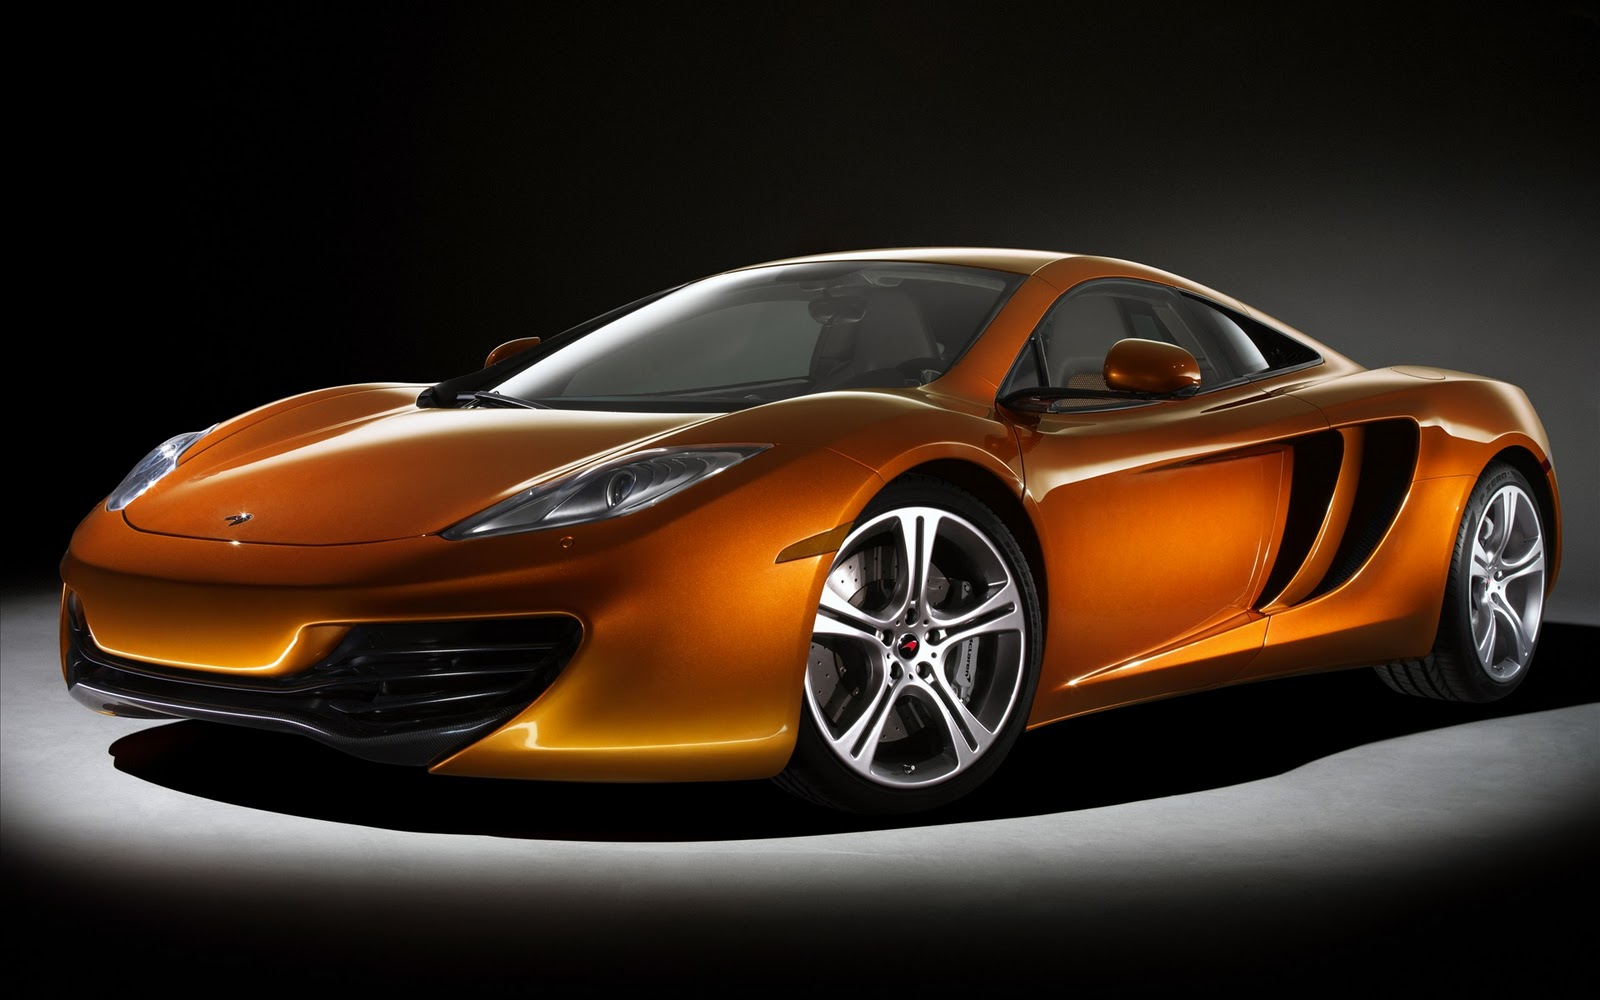 Cool Cars Wallpapers 2011 Car